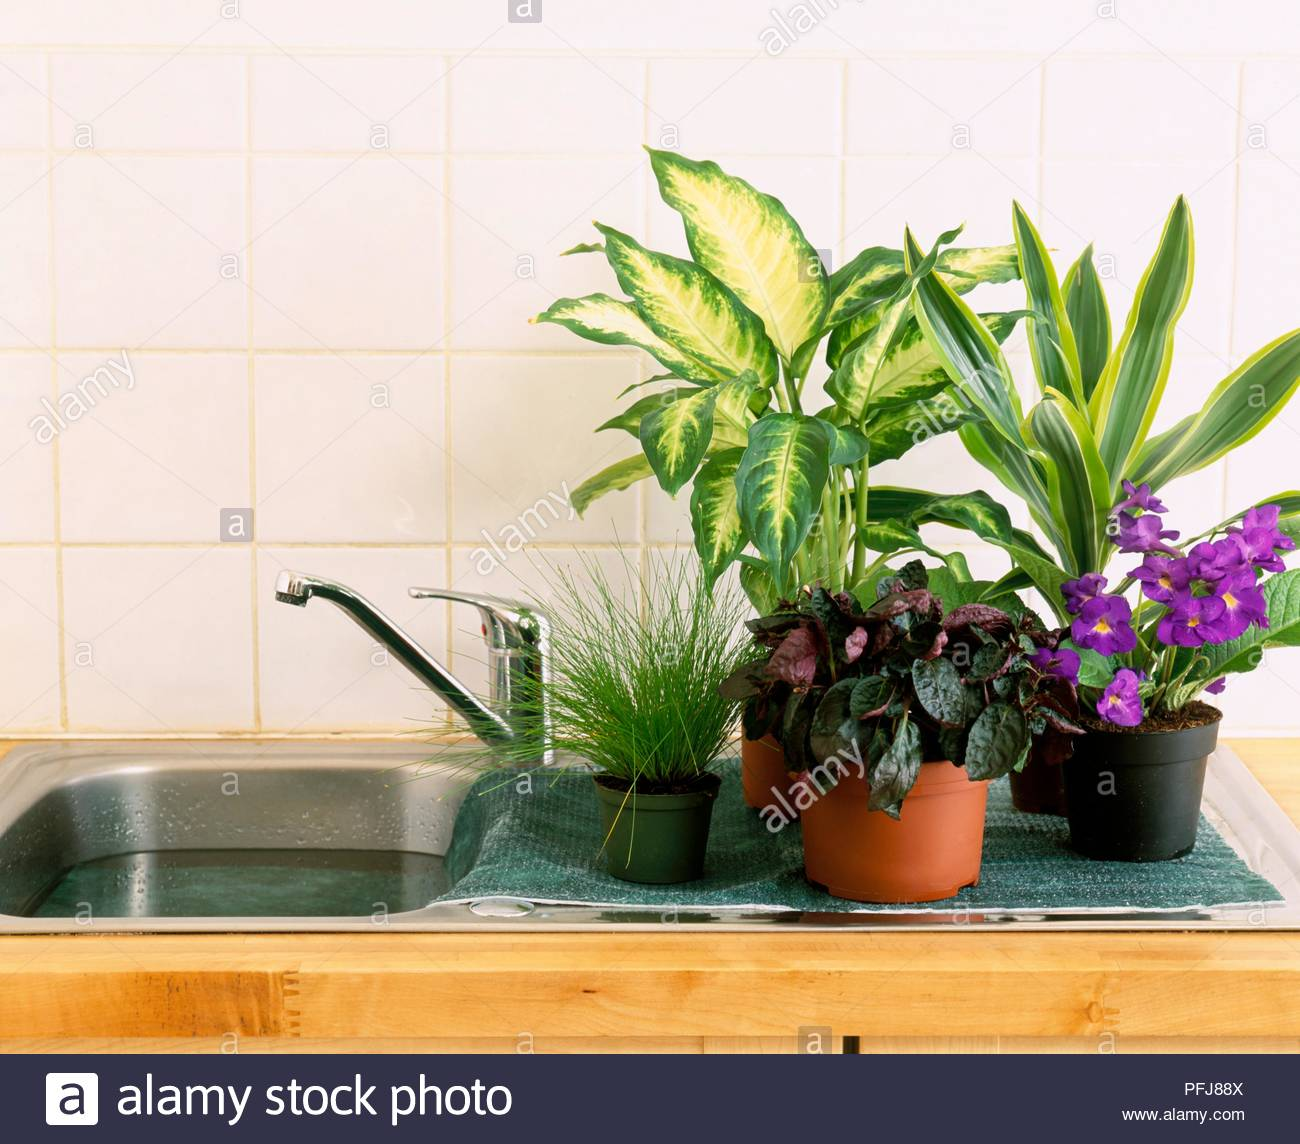 How to grow plants in old kitchen sink?